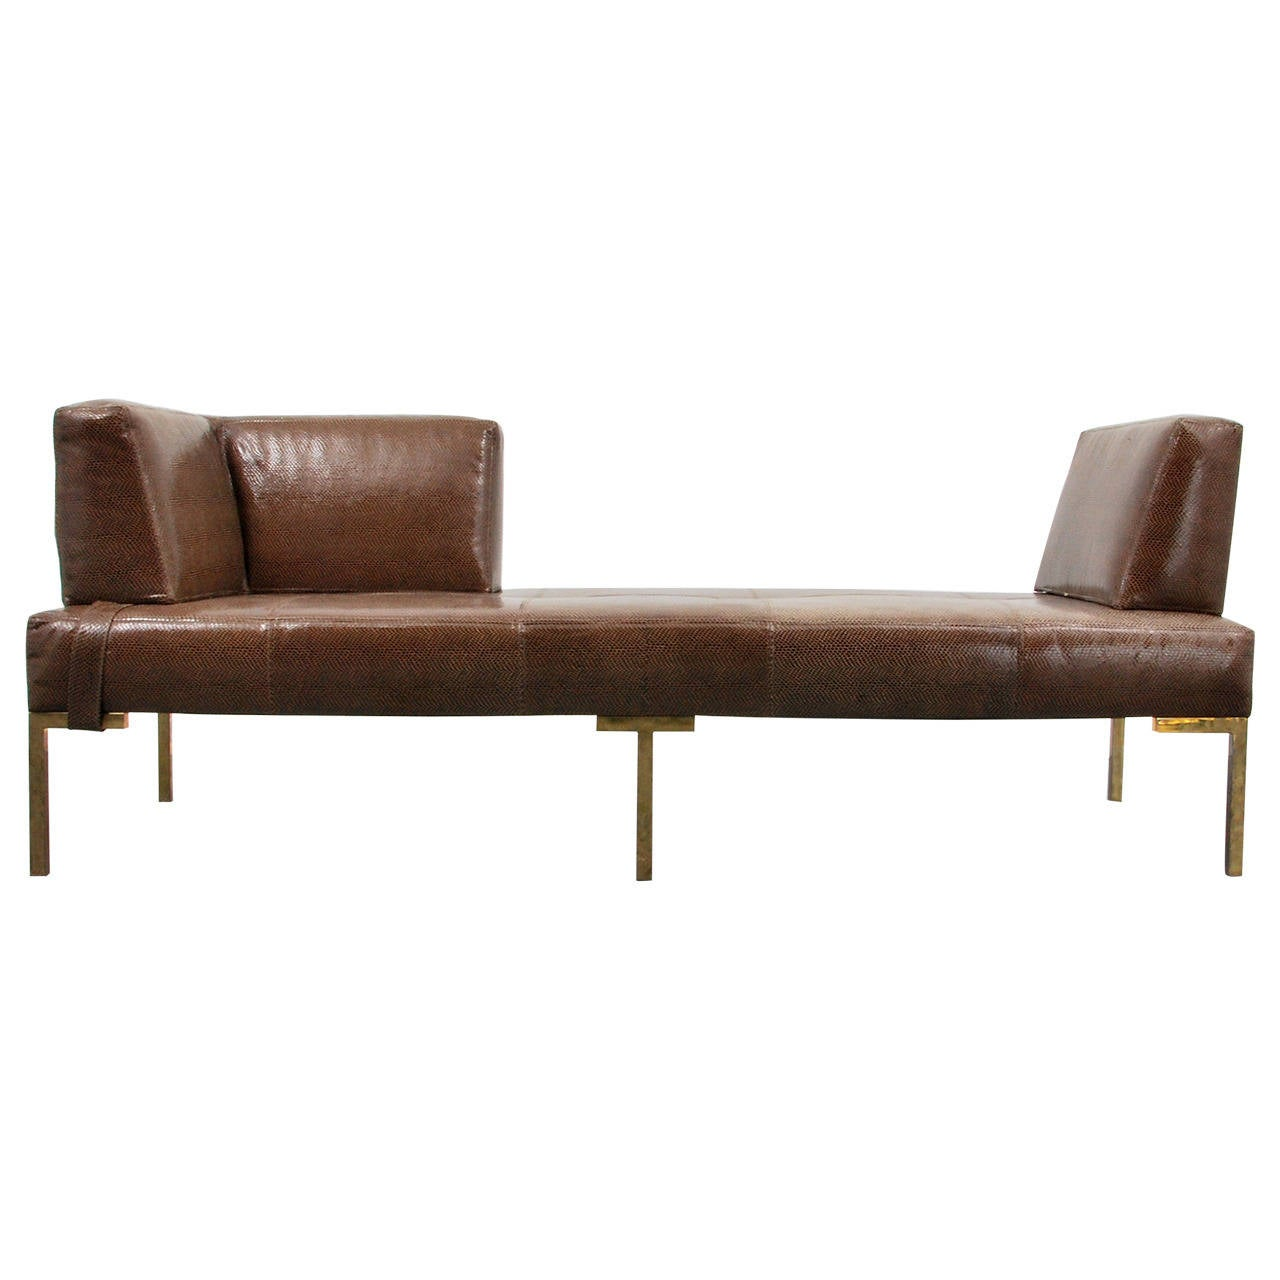 luigi gentile leather daybeds or chaise lounges two available at 1stdibs. Black Bedroom Furniture Sets. Home Design Ideas